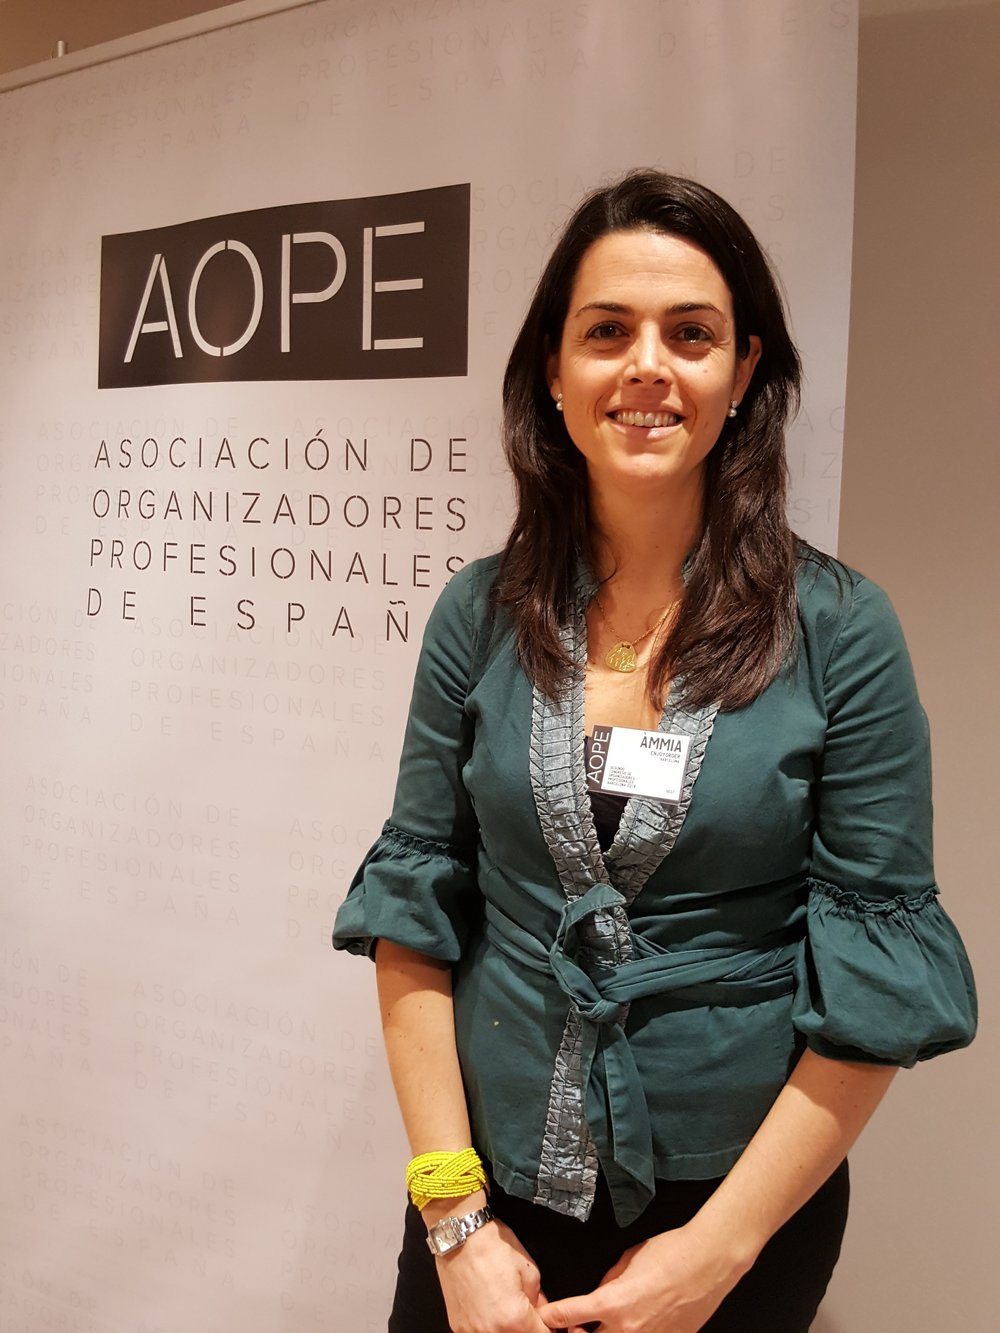 2do congreso AOPE Barcelona 2018